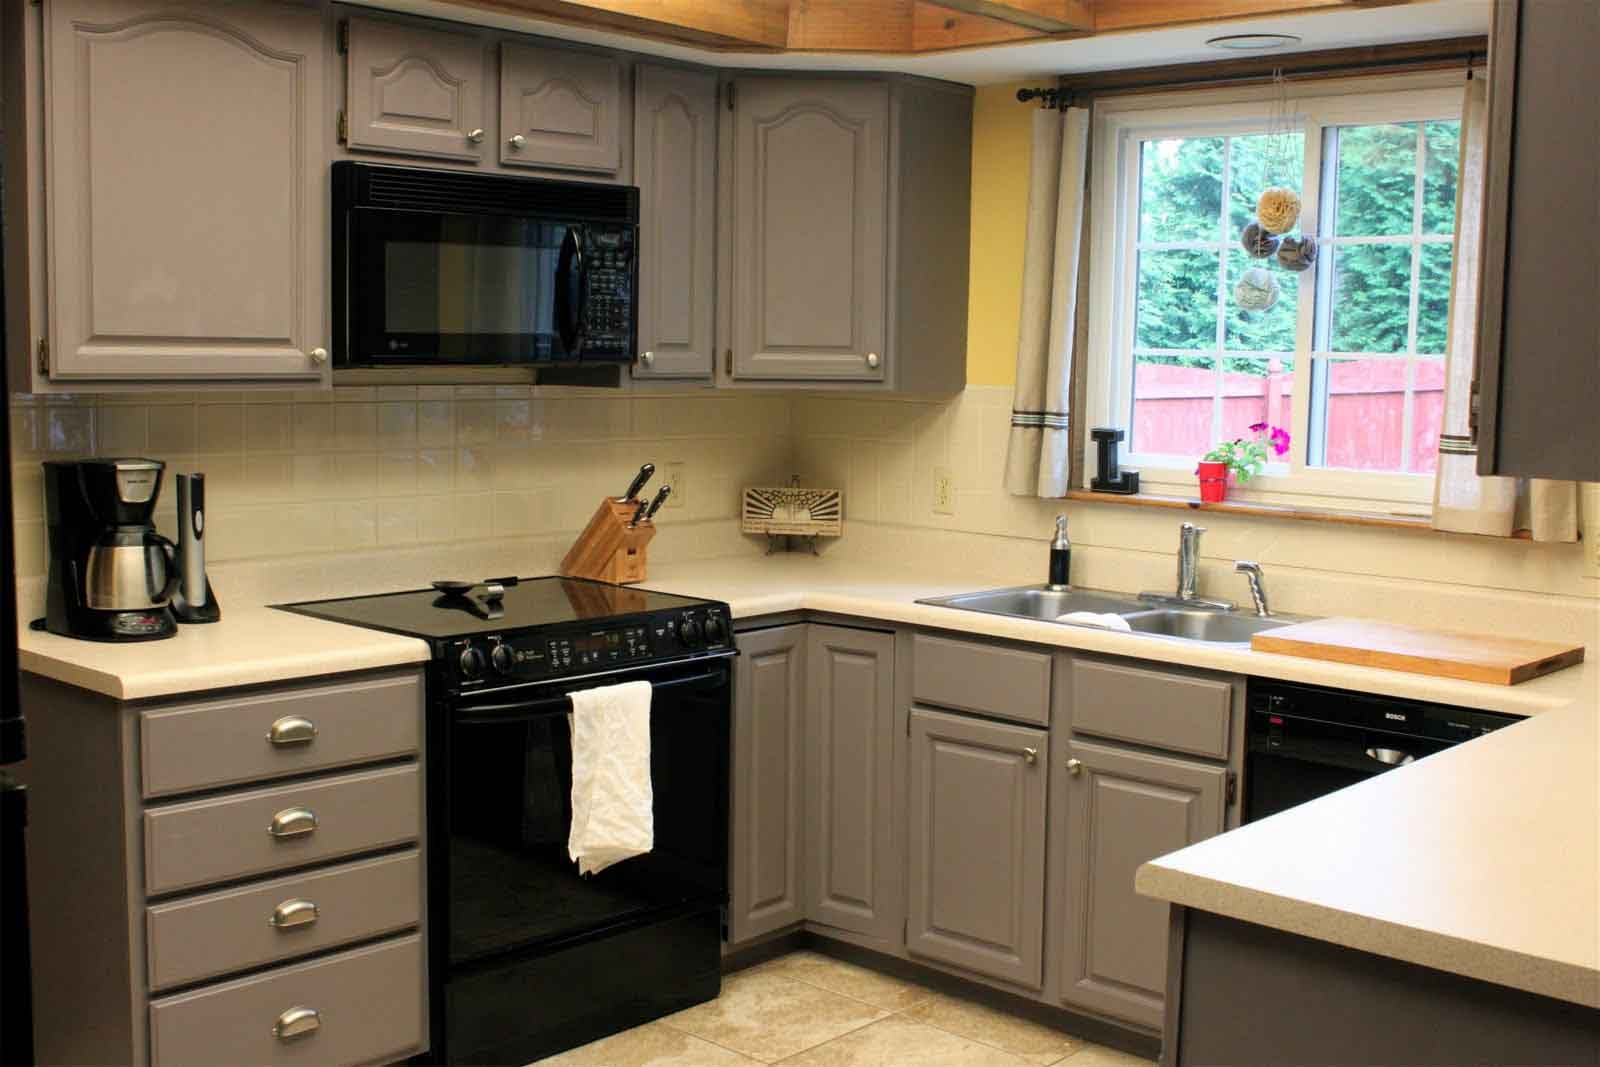 Glamorous Yellow And White Painted Kitchen Cabinets 1000 Images Pertaining To Kitchen Cupboards (View 20 of 25)